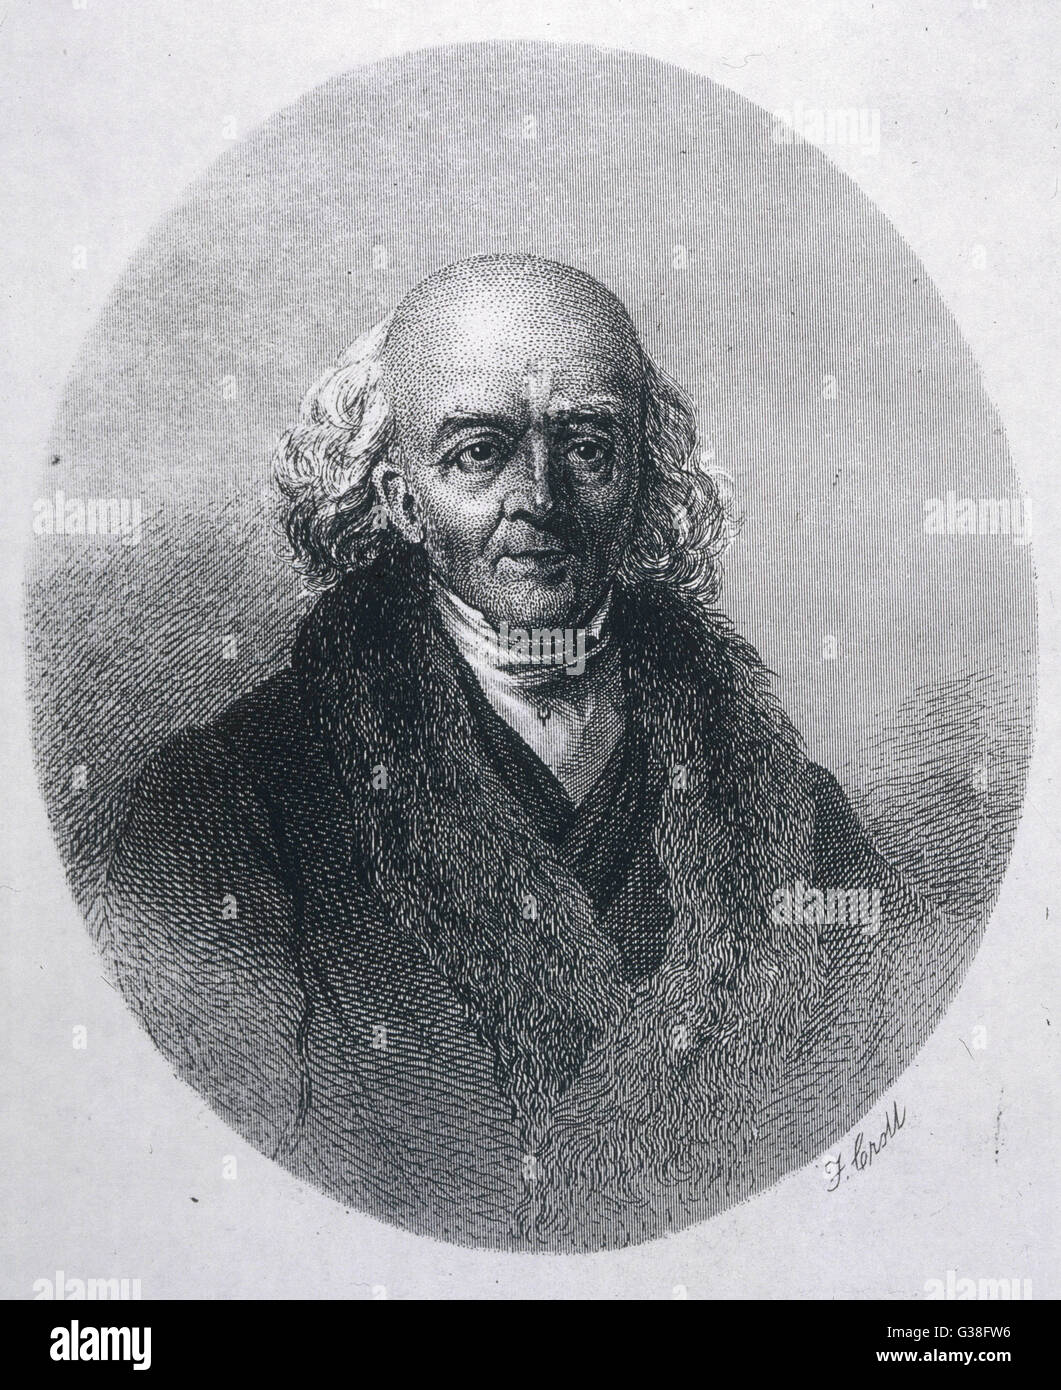 SAMUEL HAHNEMANN  Founder of homeopathy        Date: 1755 - 1843 - Stock Image